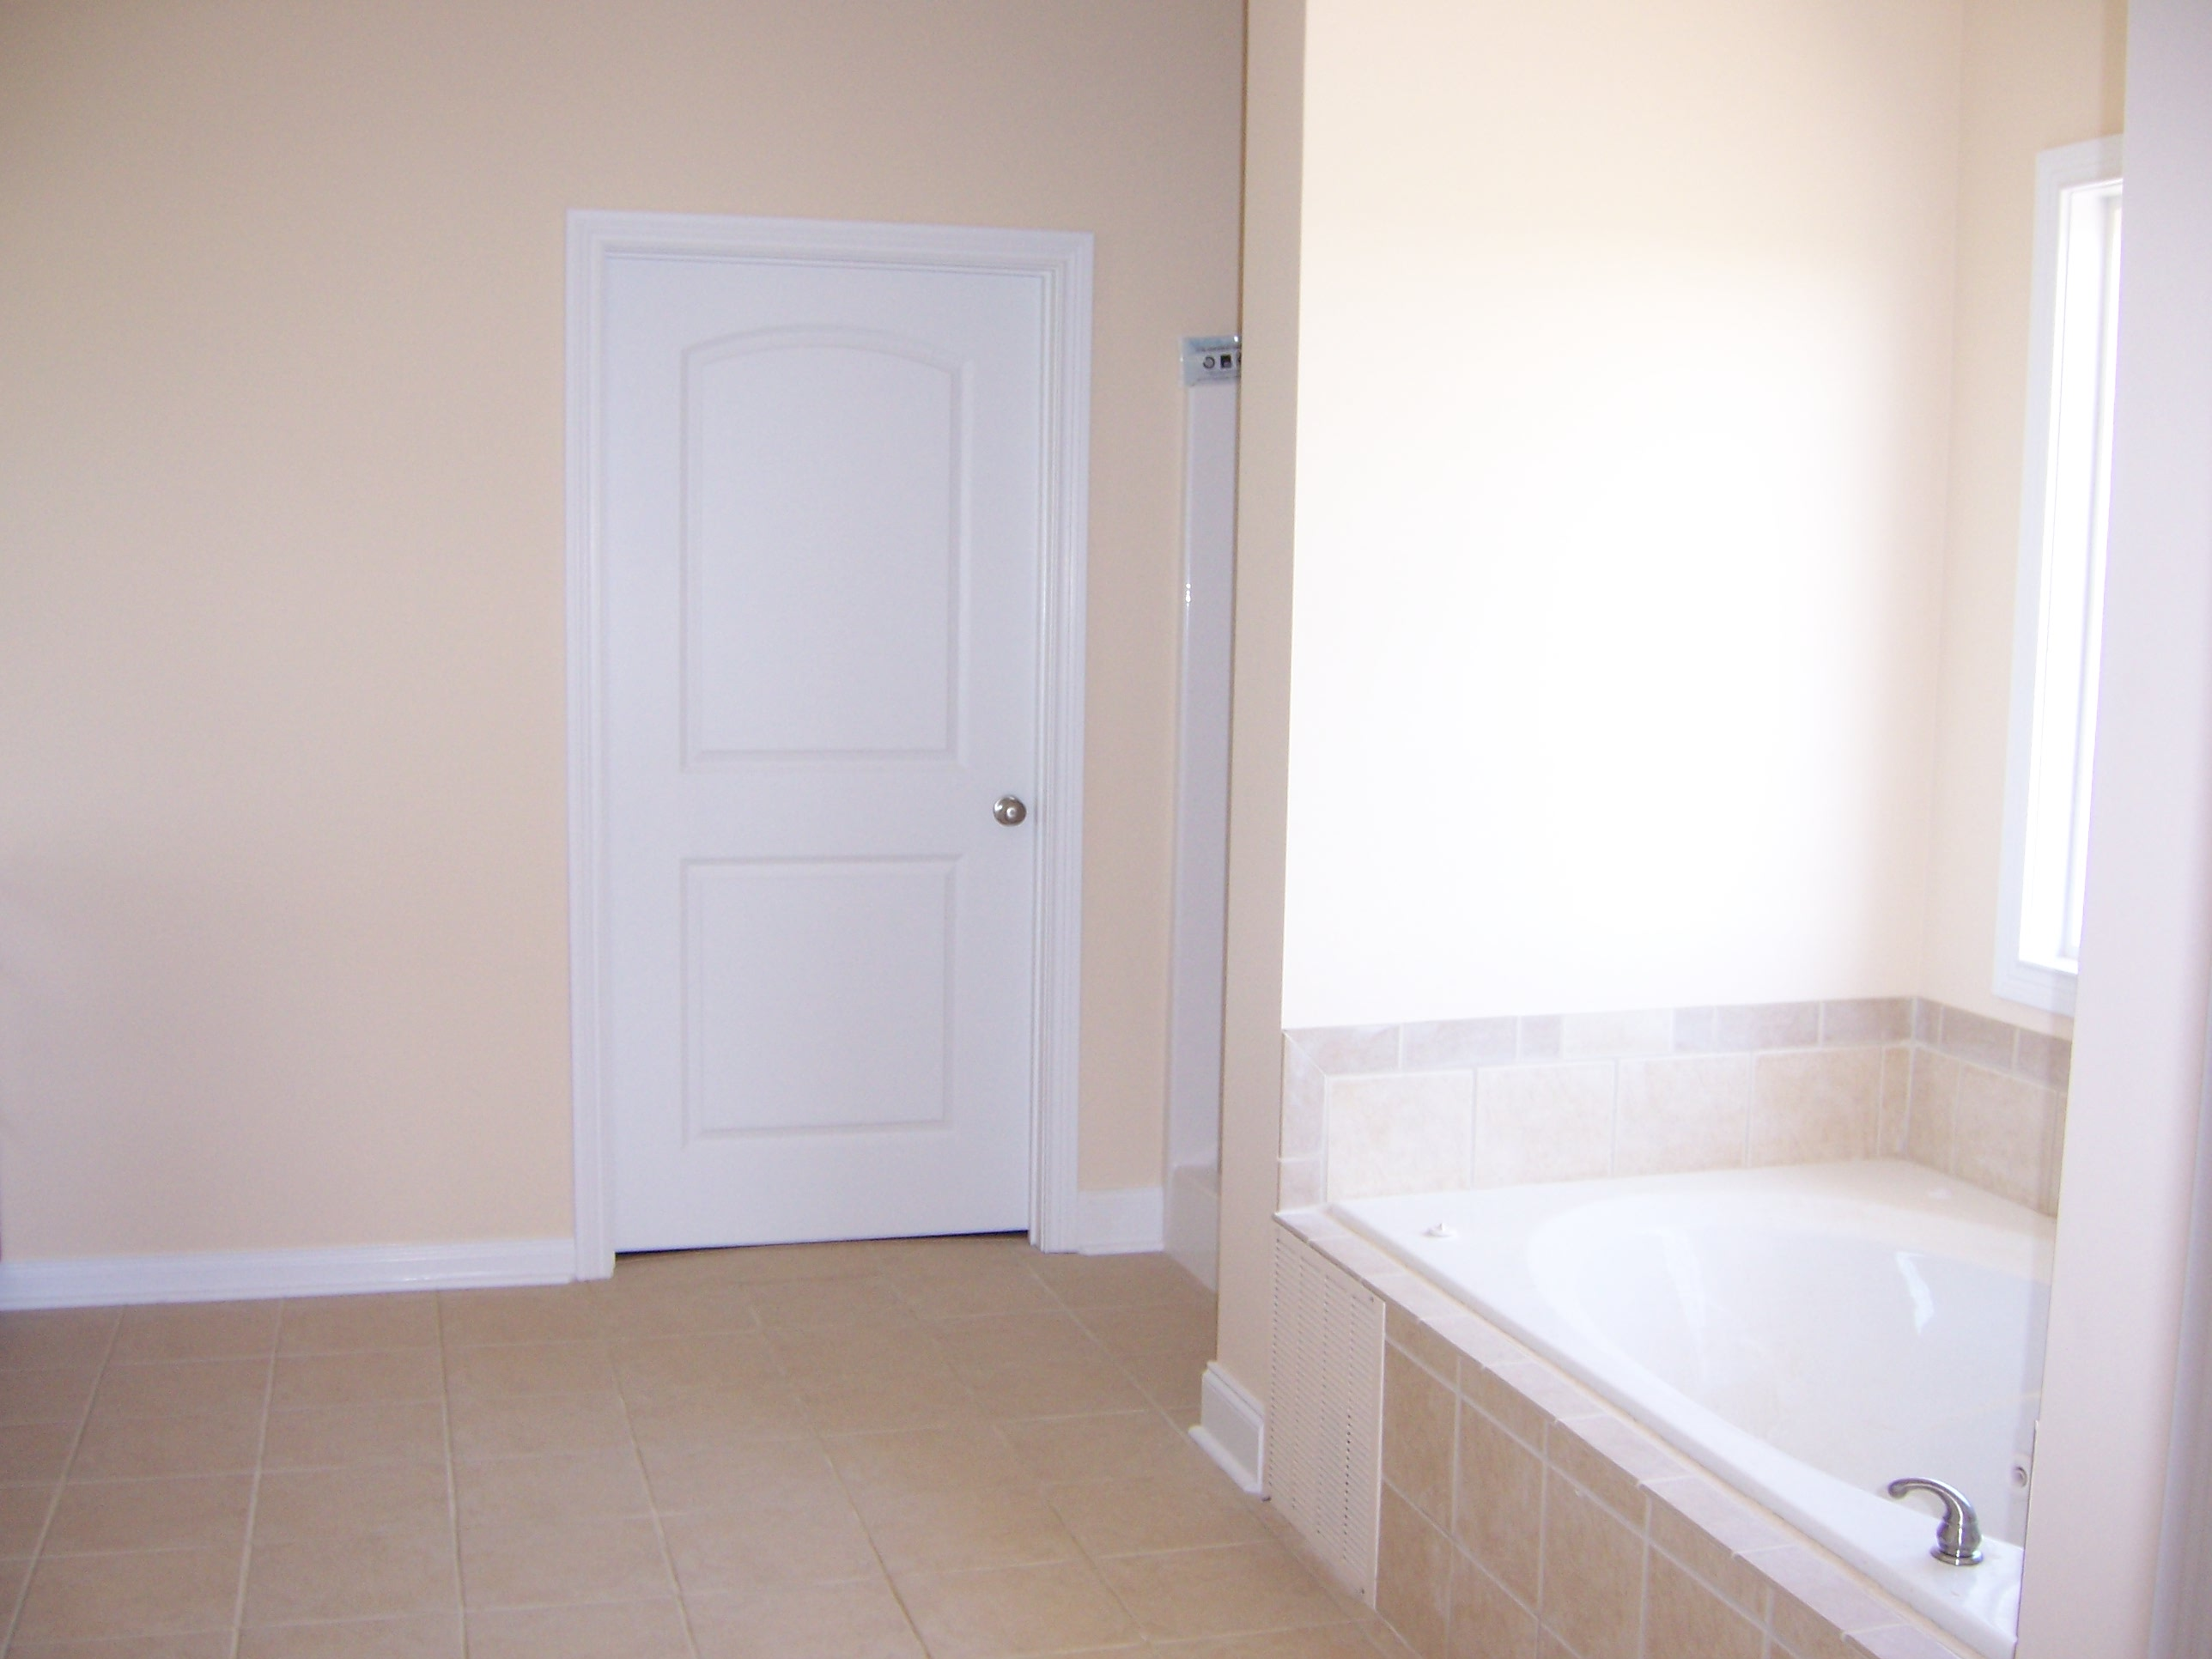 Index of /images/Bathroom